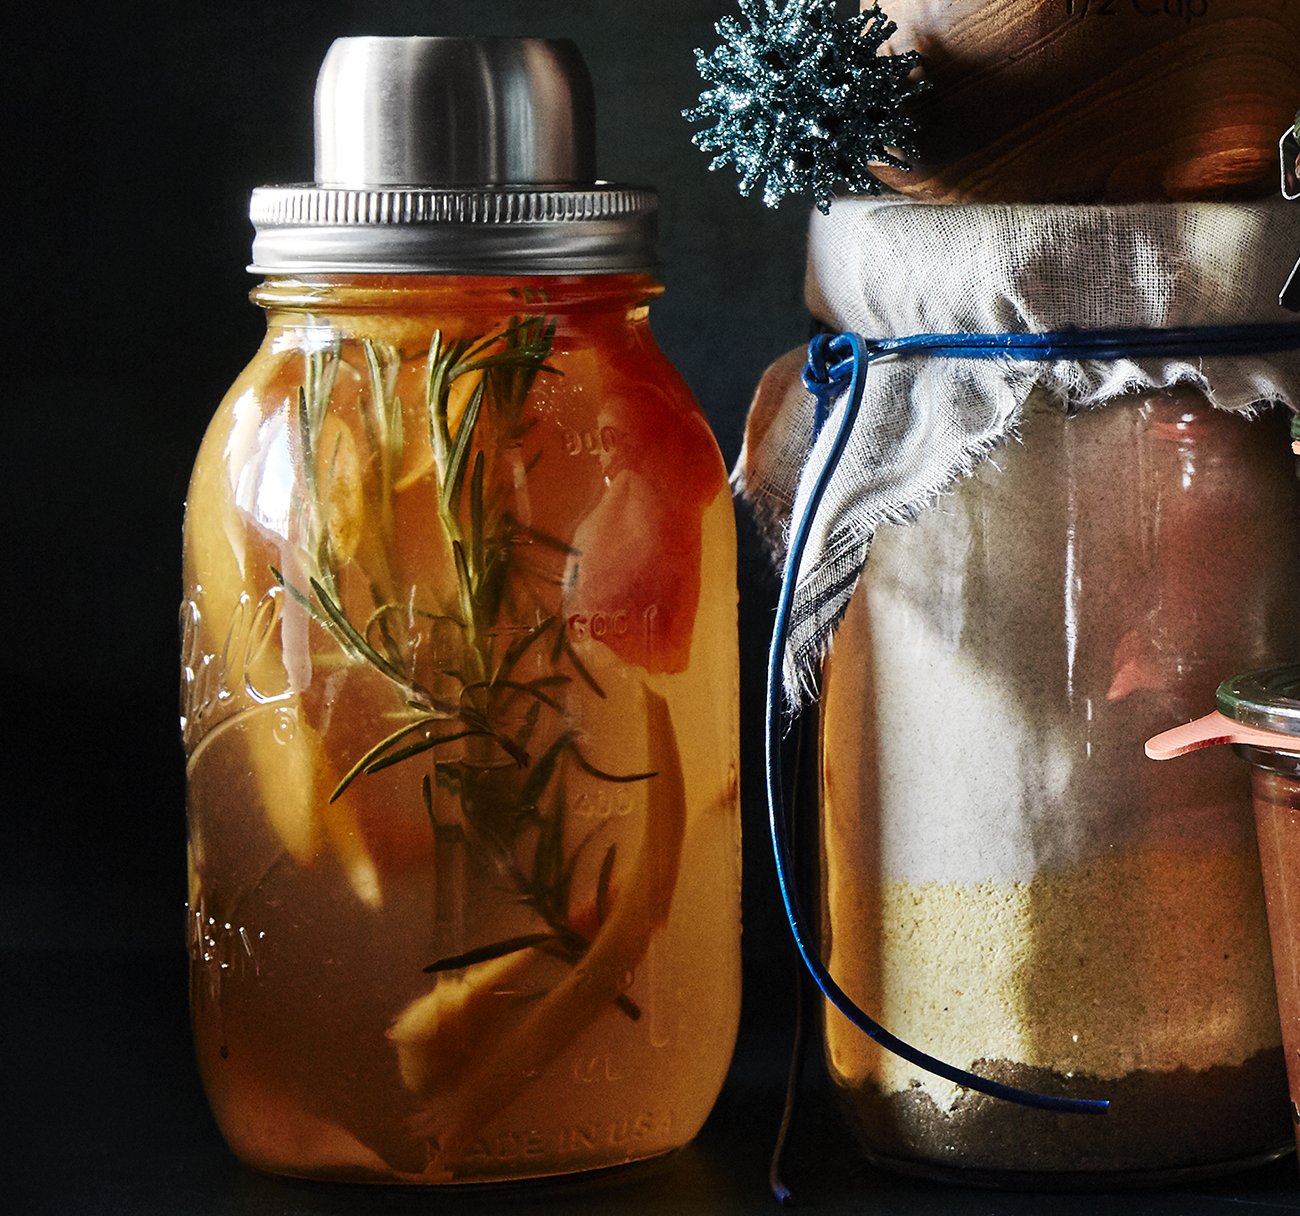 Rosemary, Ginger, And Grapefruit Syrup